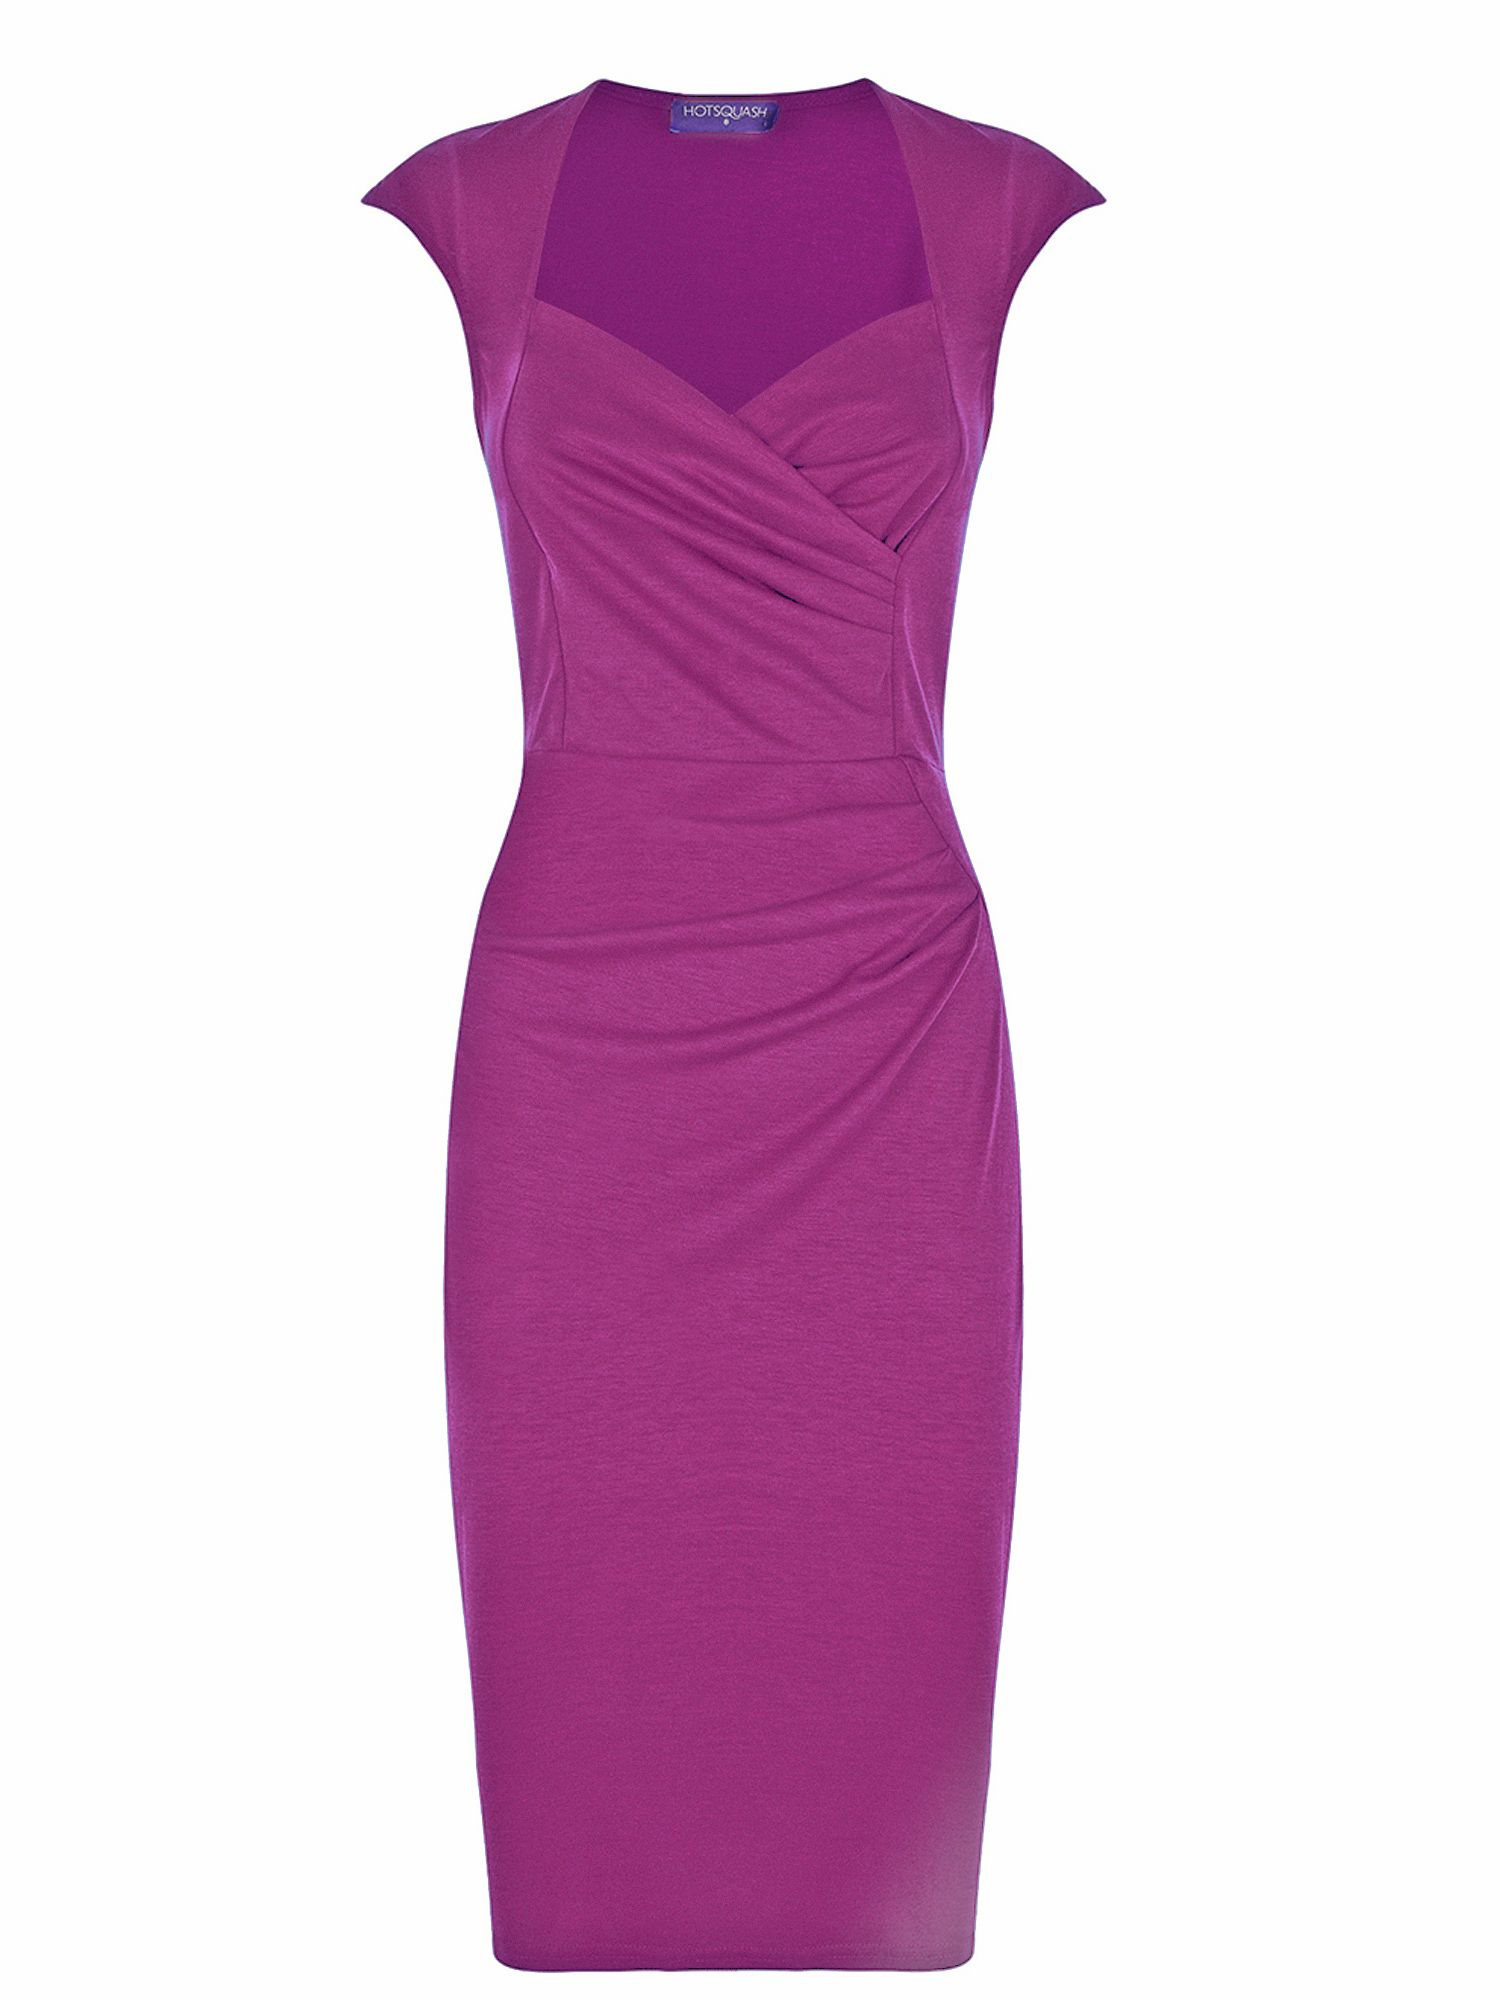 HotSquash Short sleeved dress in clever fabric, Fuchsia